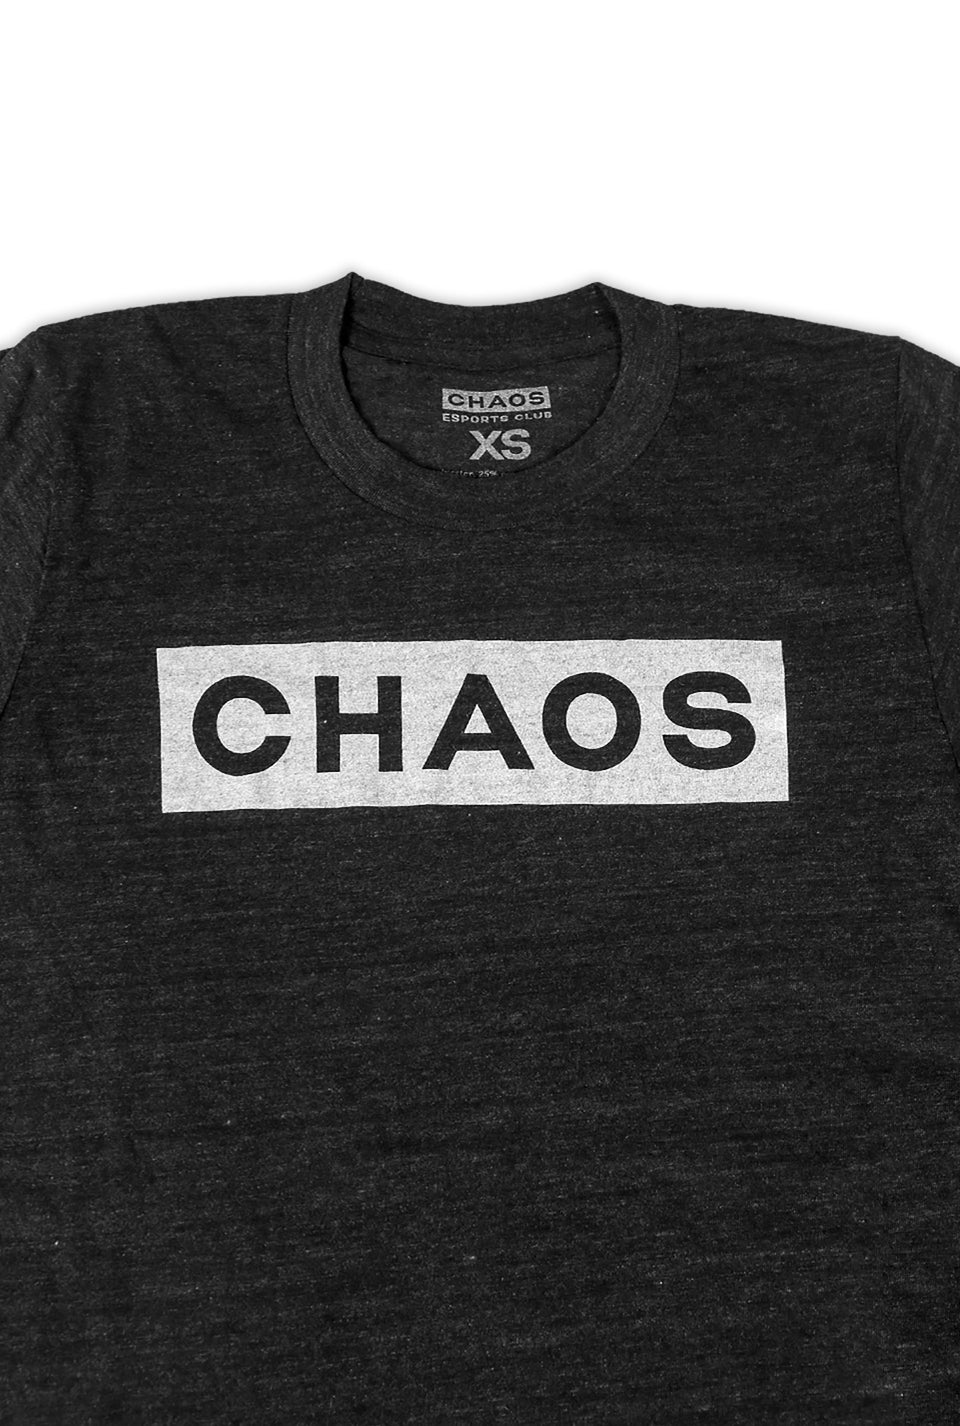 Chaos Tri-Blend Stamp Tee